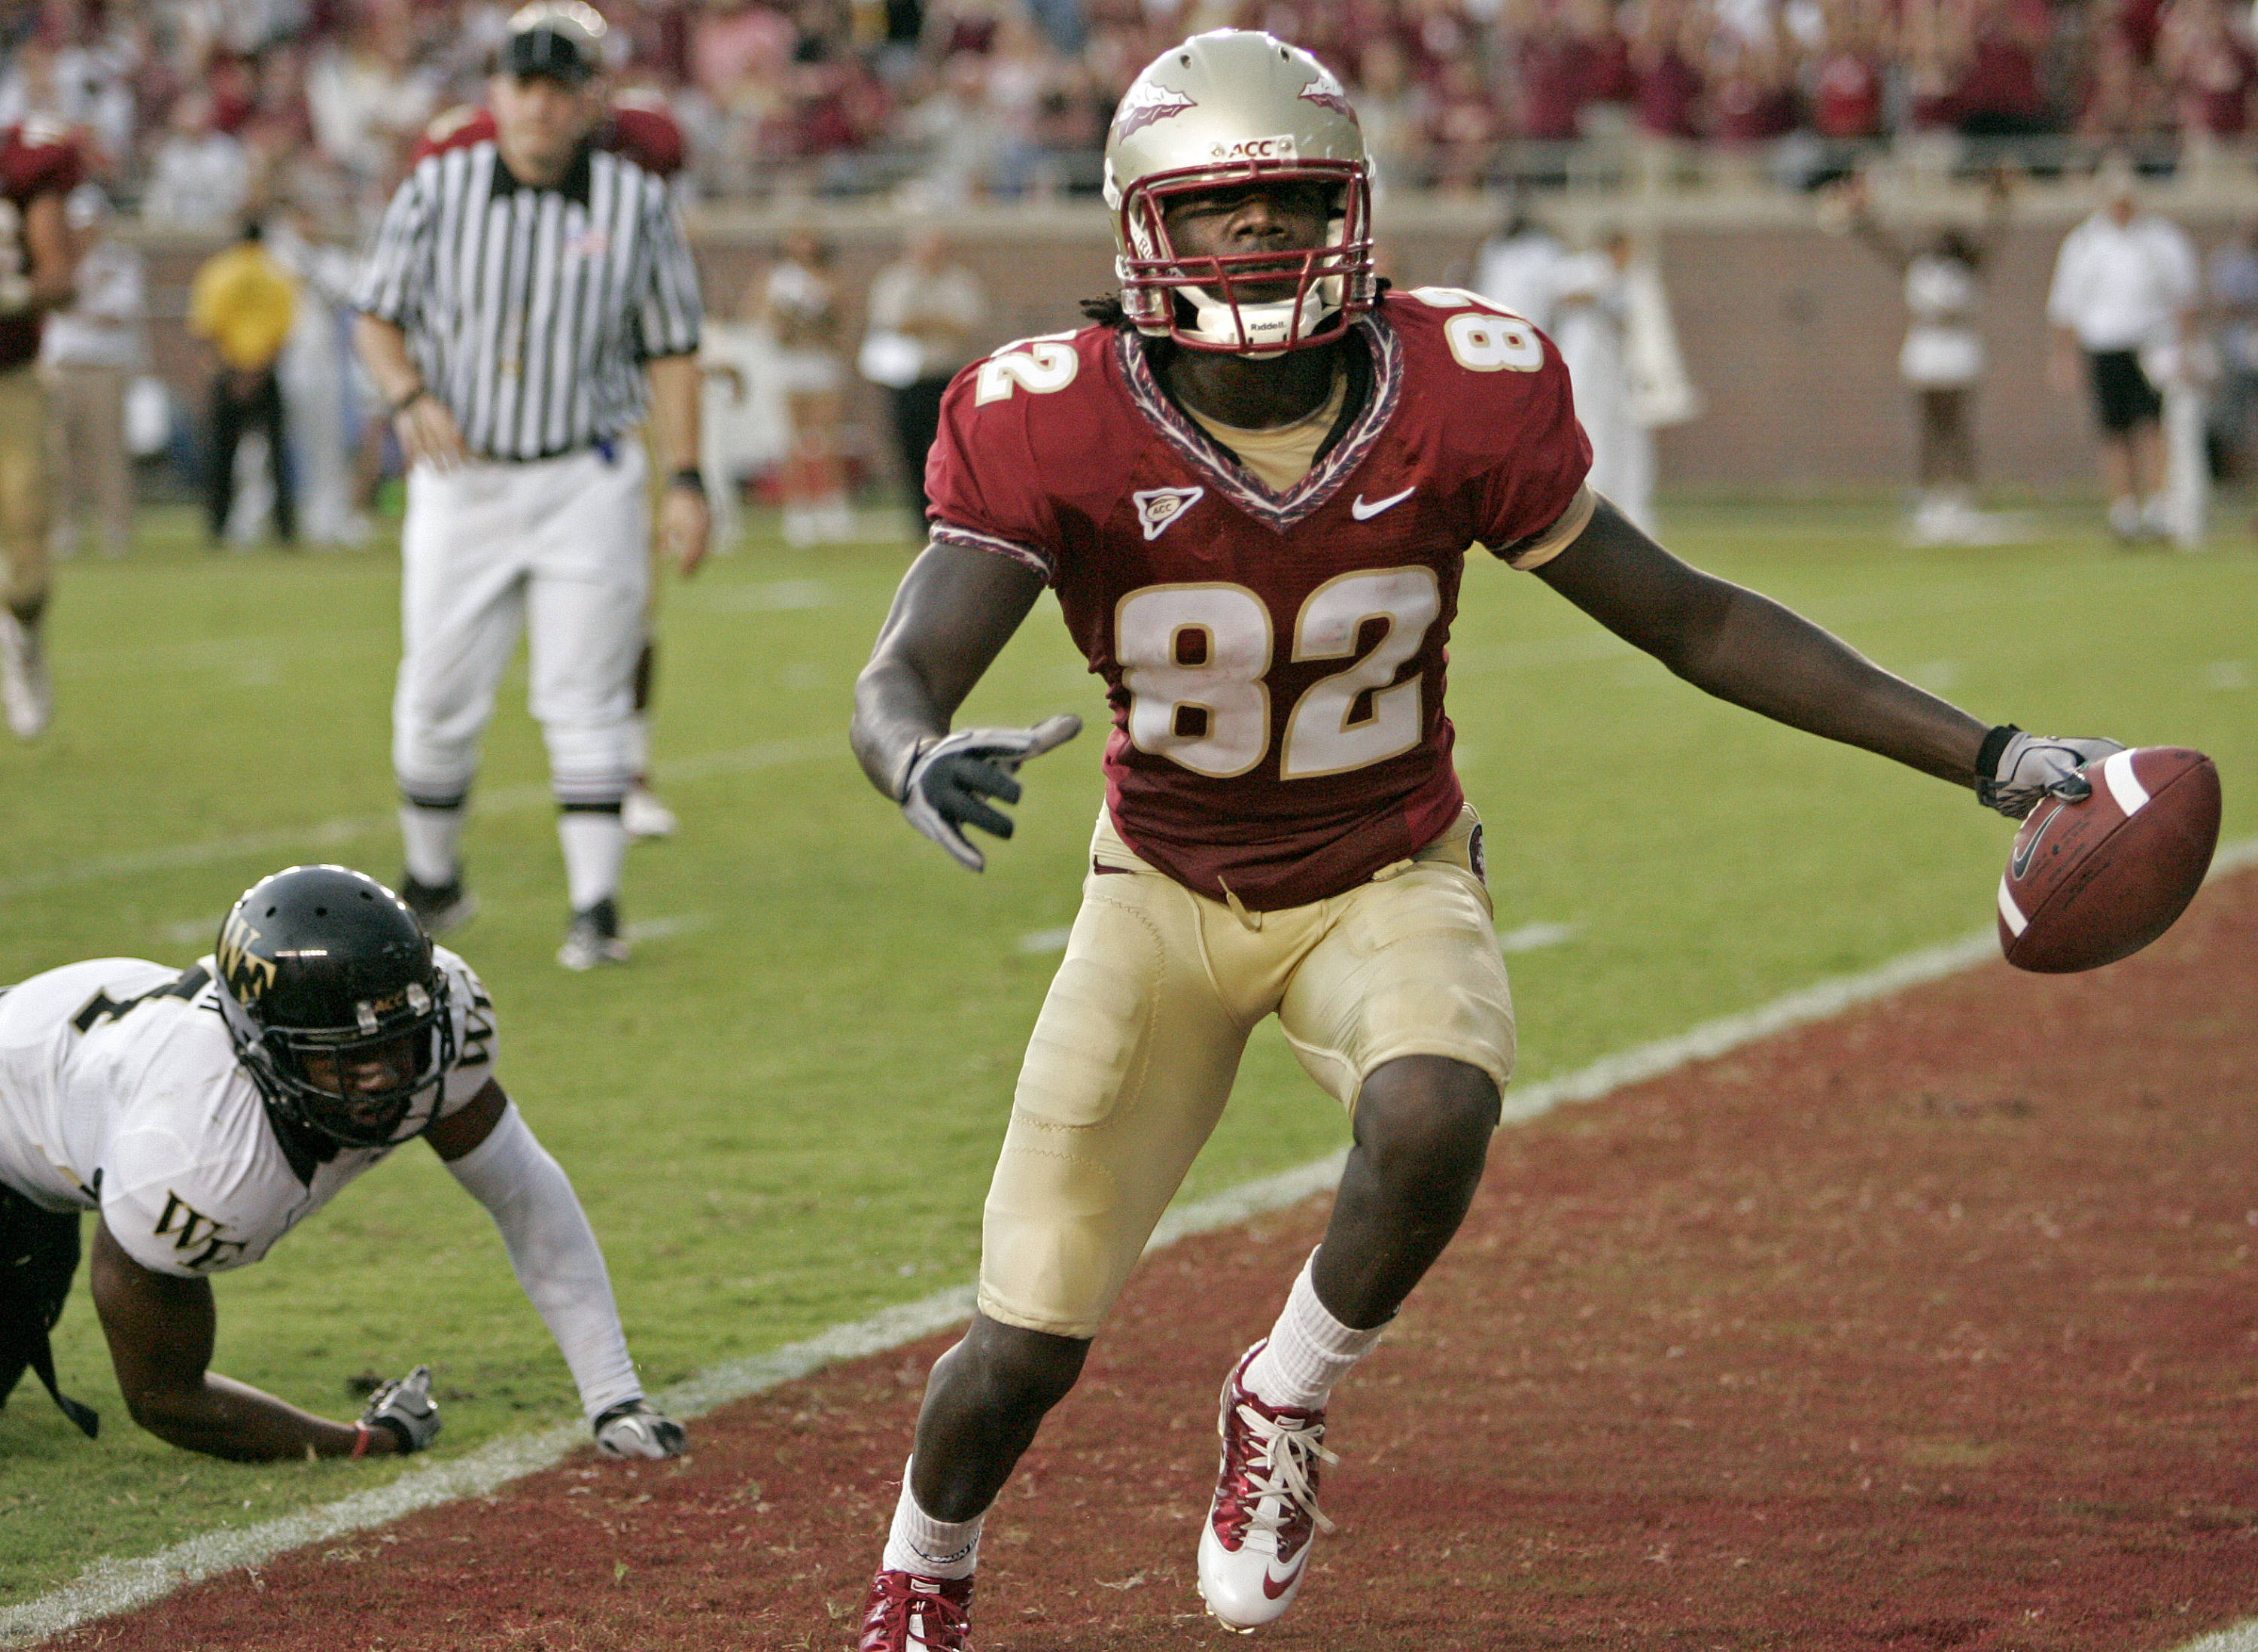 Florida State's Willie Haulstead (82) beats Wake Forest's Josh Bush on a pass-play to score in the fourth quarter of an NCAA college football game which Florida State won 31-0 on Saturday, Sept. 25, 2010, in Tallahassee, Fla. (AP Photo/Steve Cannon)